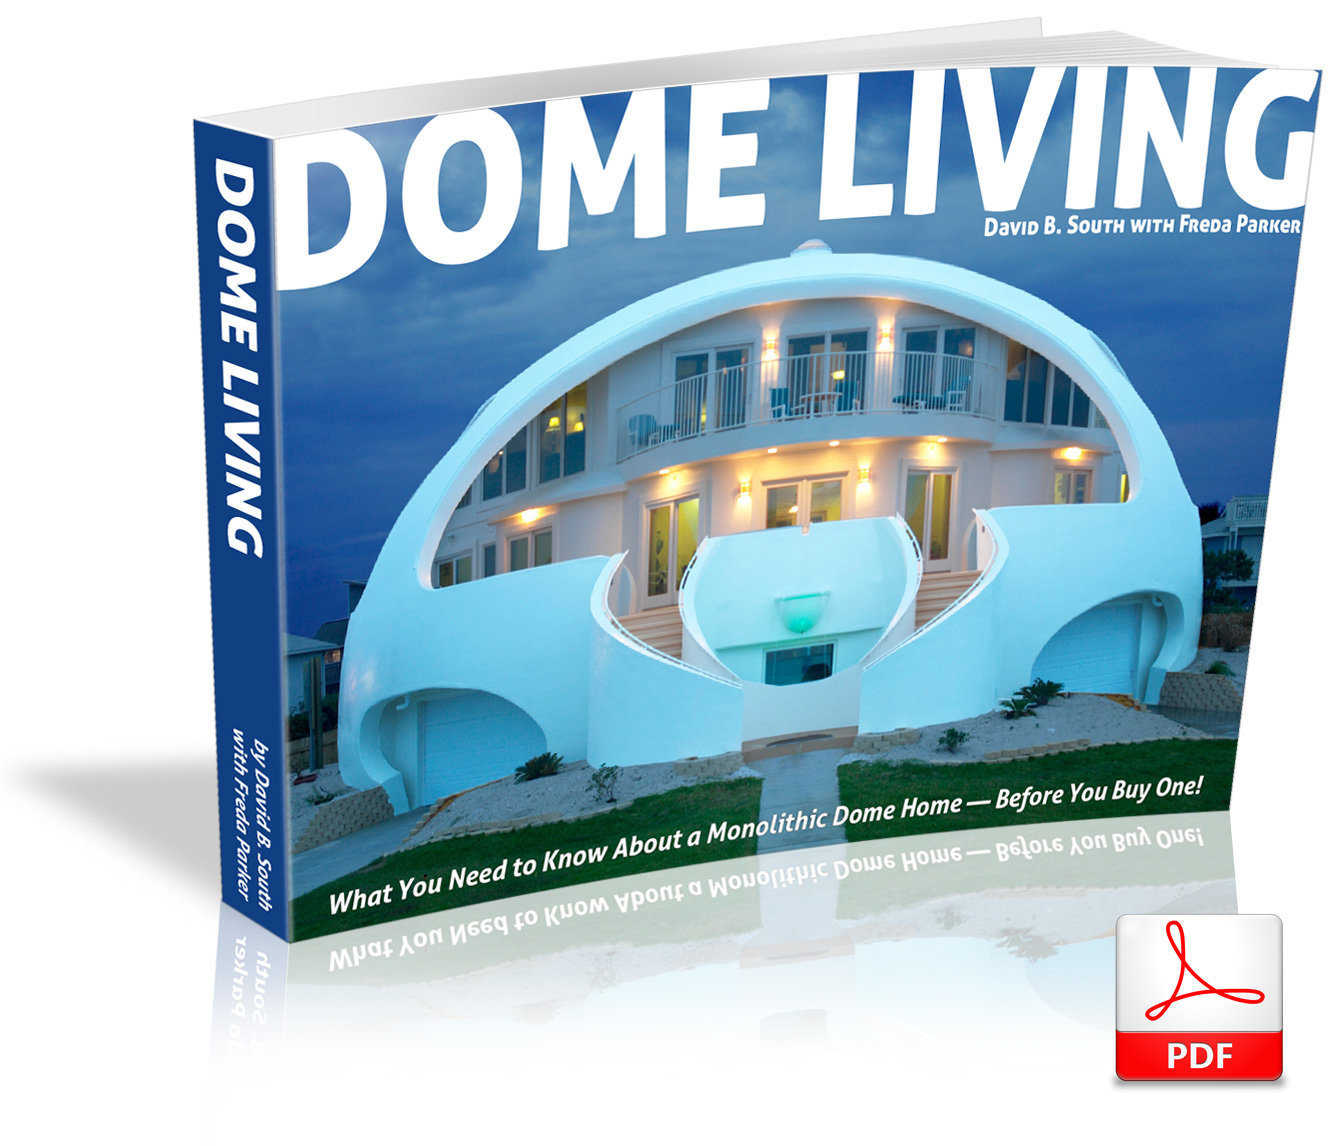 Concrete Dome Home Kits: Underground Monolithic Dome Home Plans